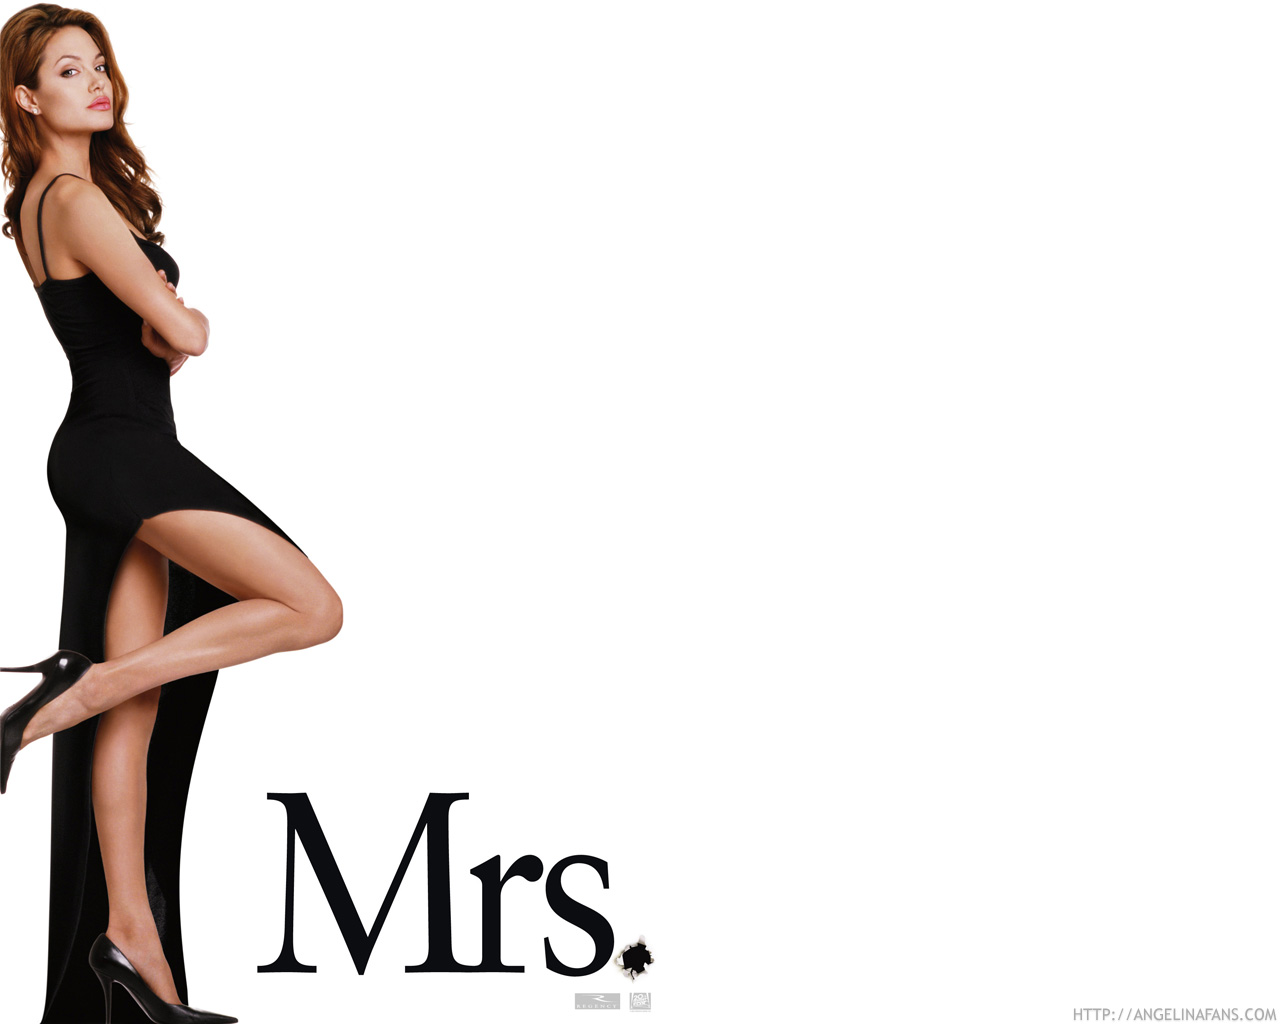 Mr. & Mrs. Smith - Angelina Jolie Wallpaper (741681) - Fanpop fanclubs ...